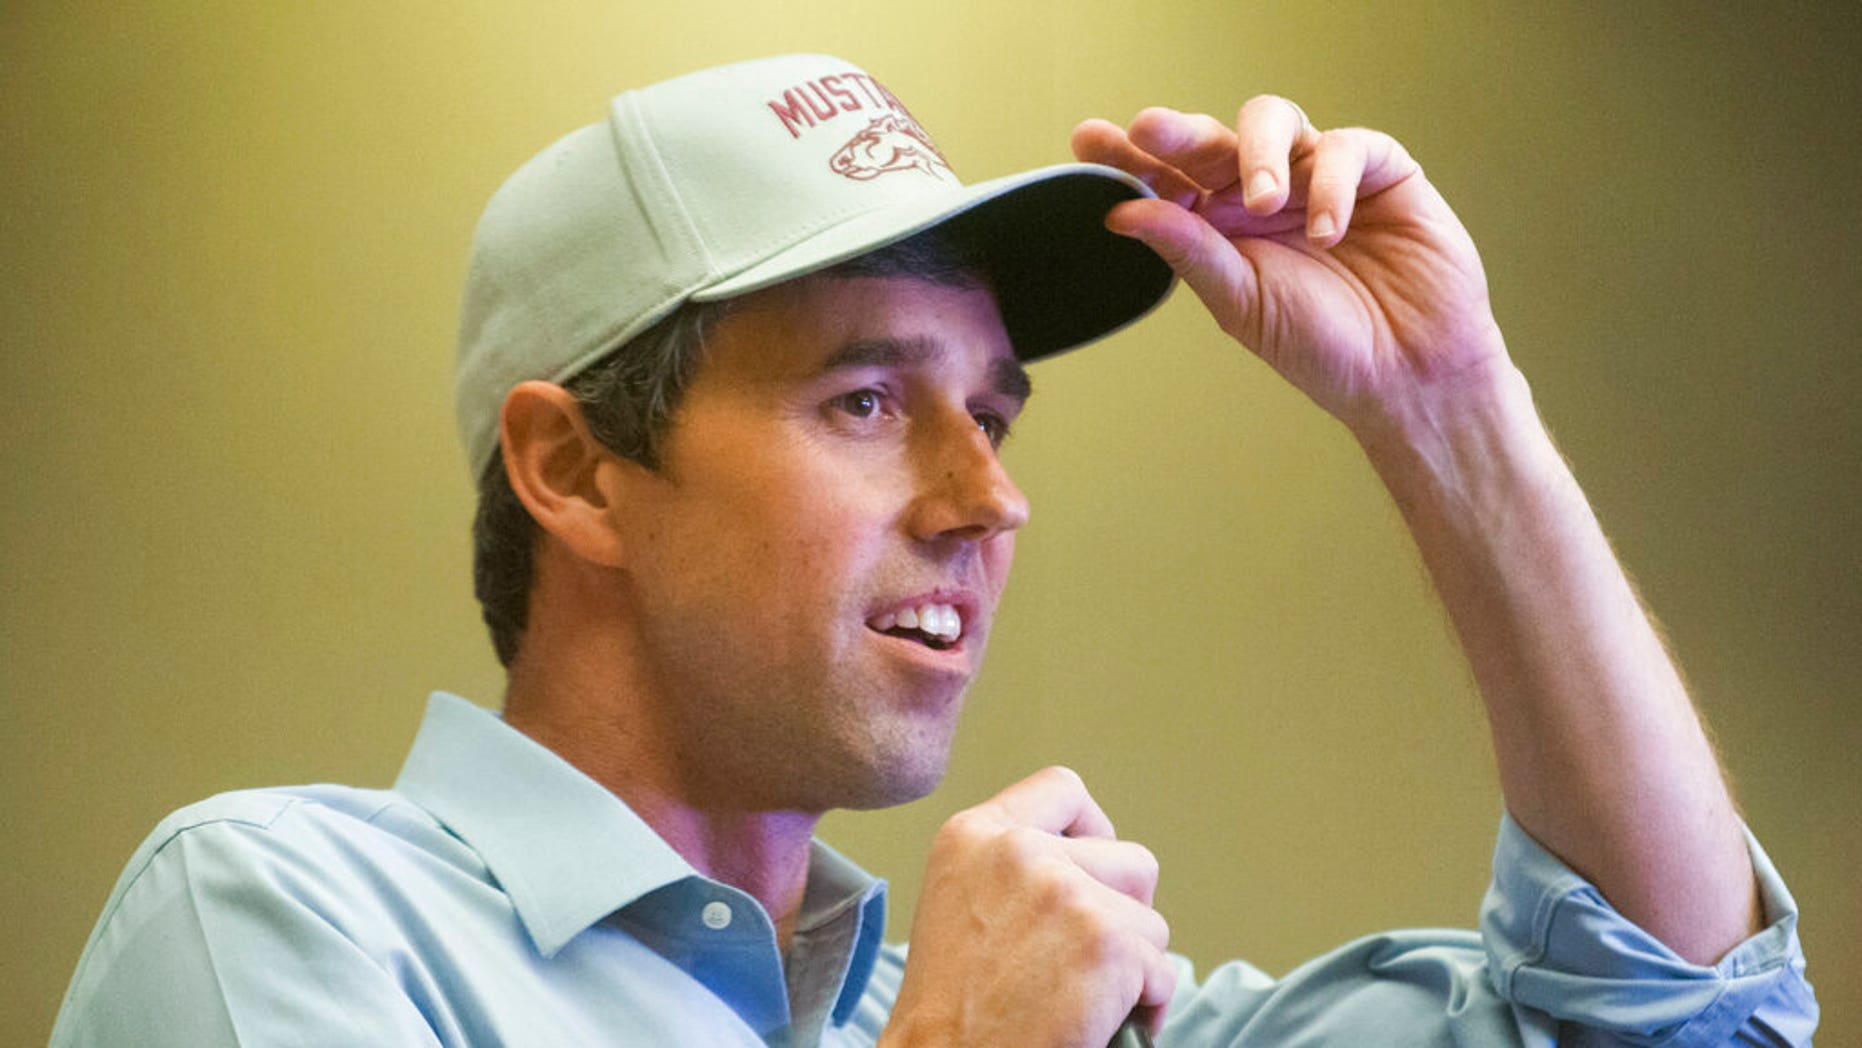 FILE: Democratic presidential candidate and former Texas congressman, Beto O & Rourke, speaks during an election campaign in Sioux City, Iowa.